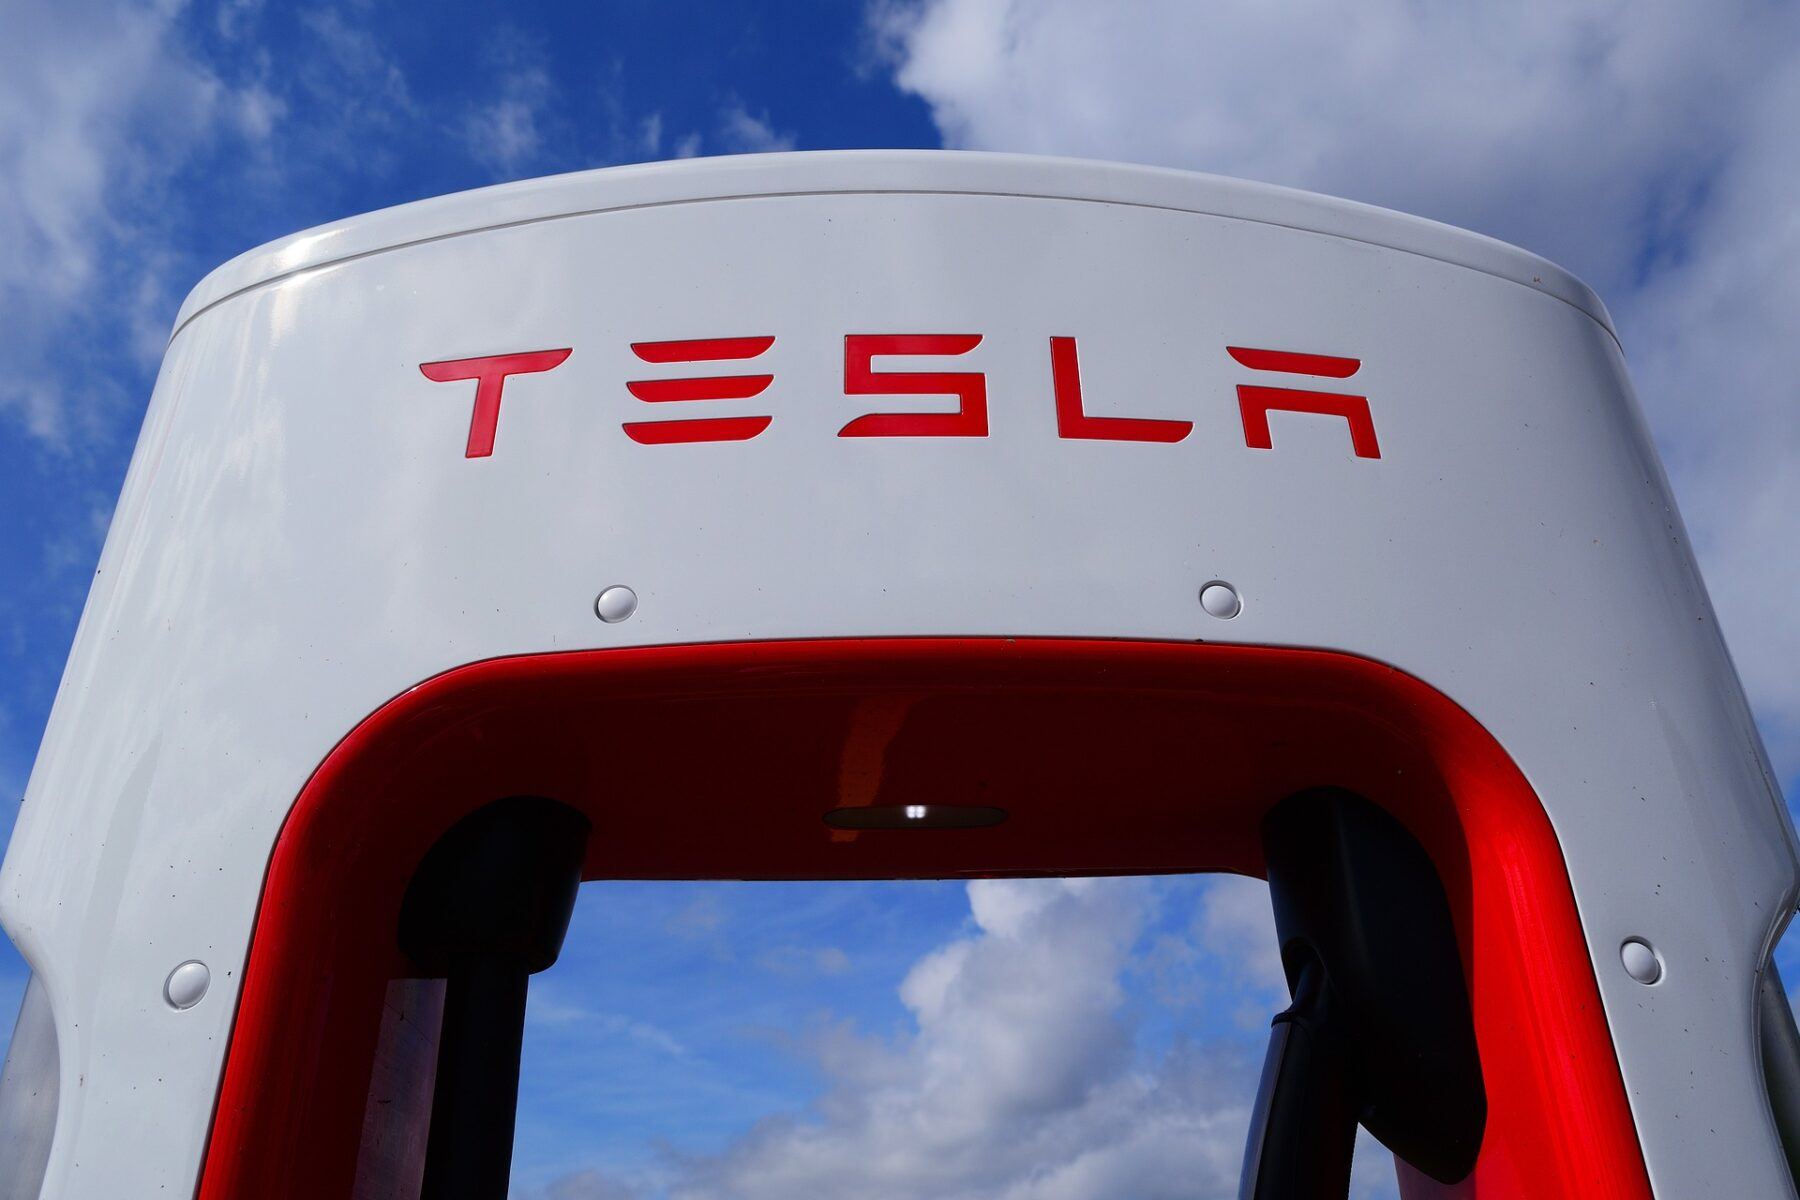 Tesla already has a unrealized profit of $ 1 billion from holding Bitcoin